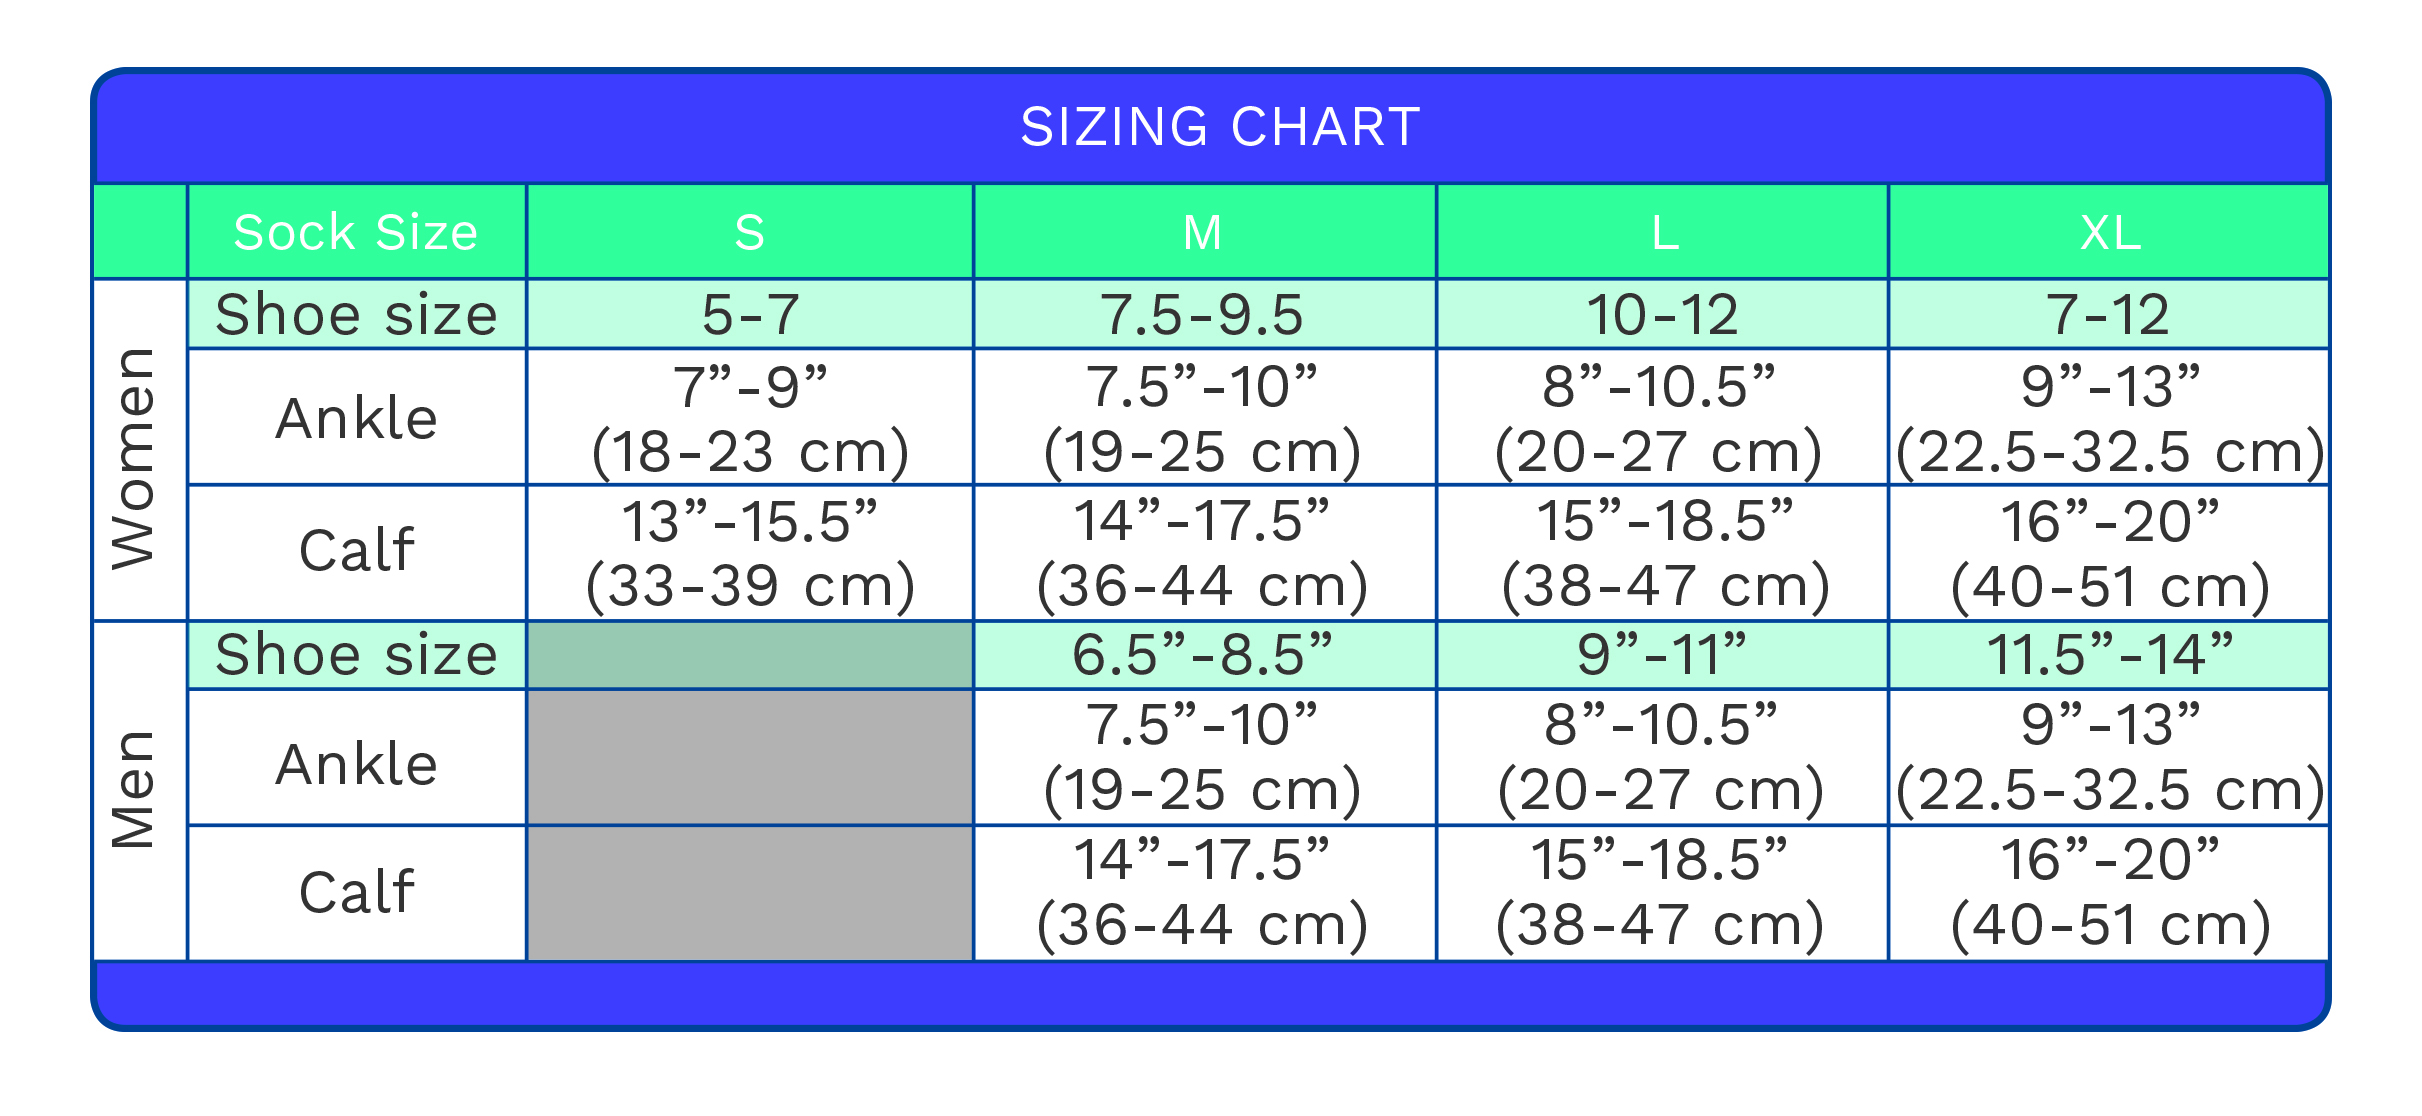 Dr Segals Sizing Chart